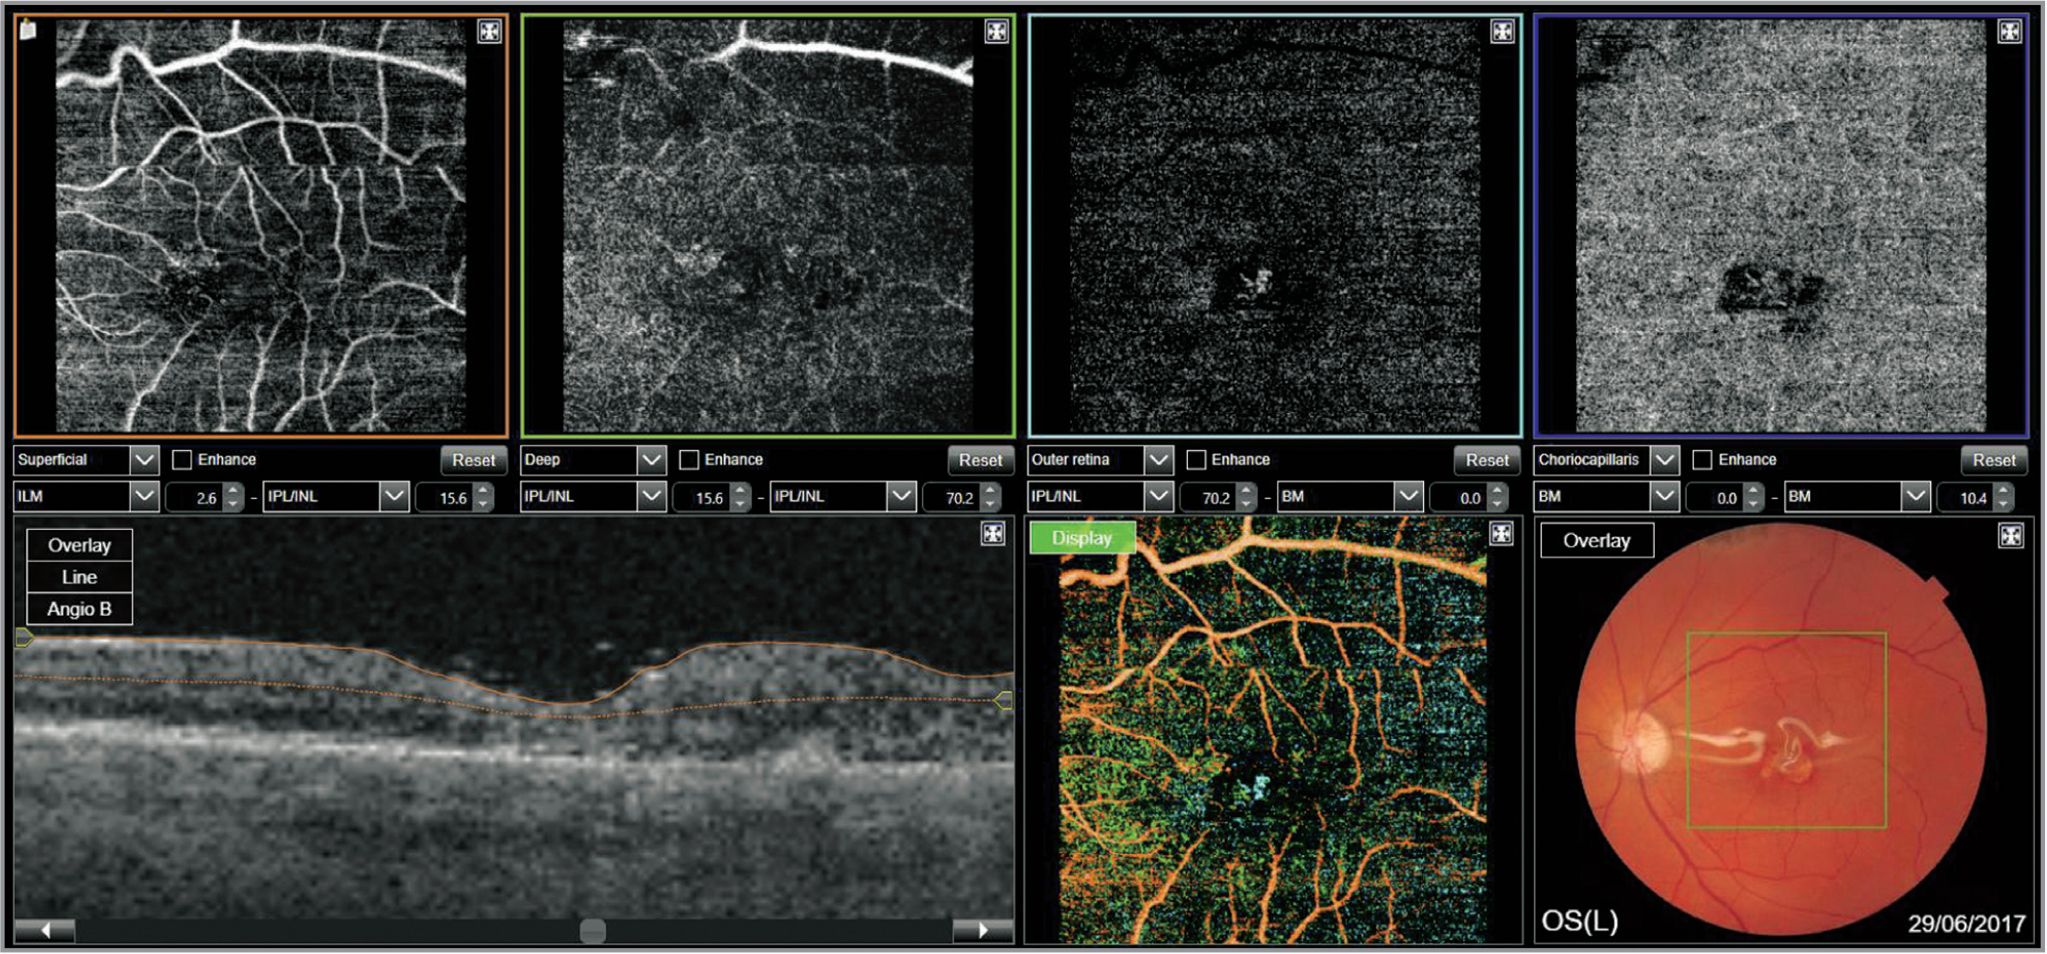 Optical coherence tomography angiography at 3-month follow-up with normal retinal circulation. The top four boxes present en face sections: of the superficial retina, deep retina, superficial choriocapillaris, and deep choroid. Cross-sectional cut in the bottom was used to delineate en face cuts.